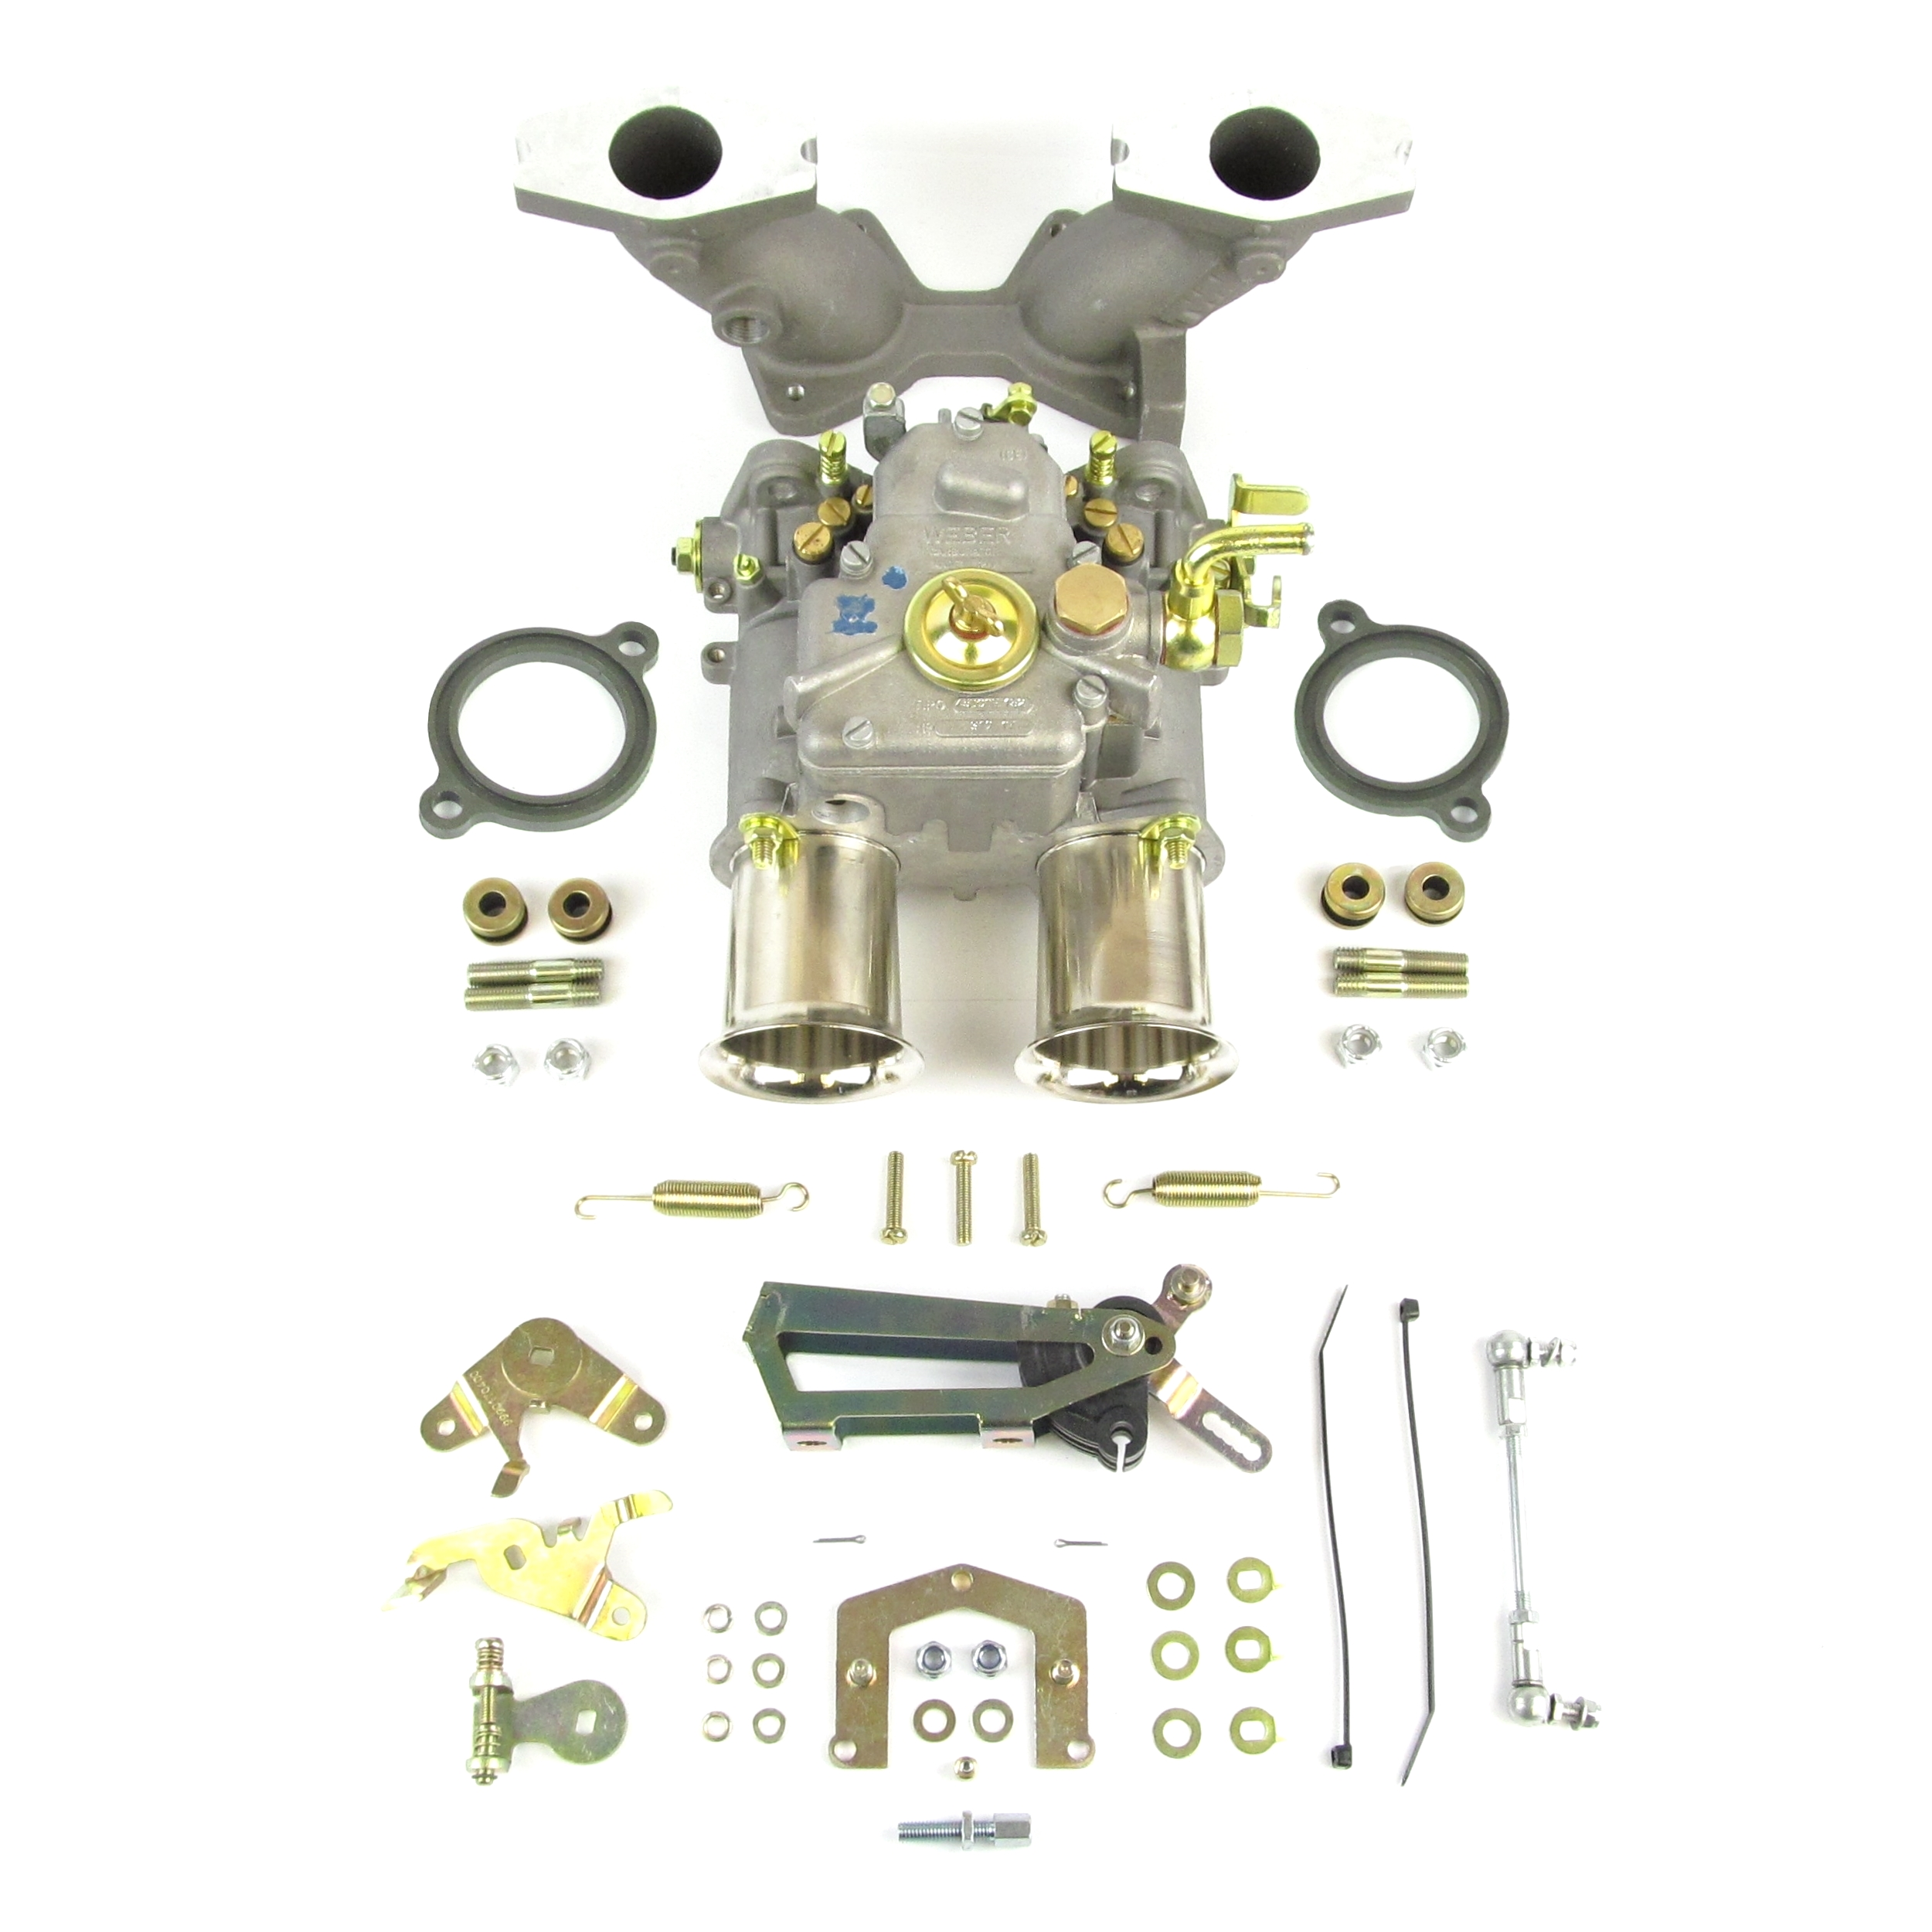 PMG102 Weber 45DCOE carburettor kit with manifold - MGB 1800 B series